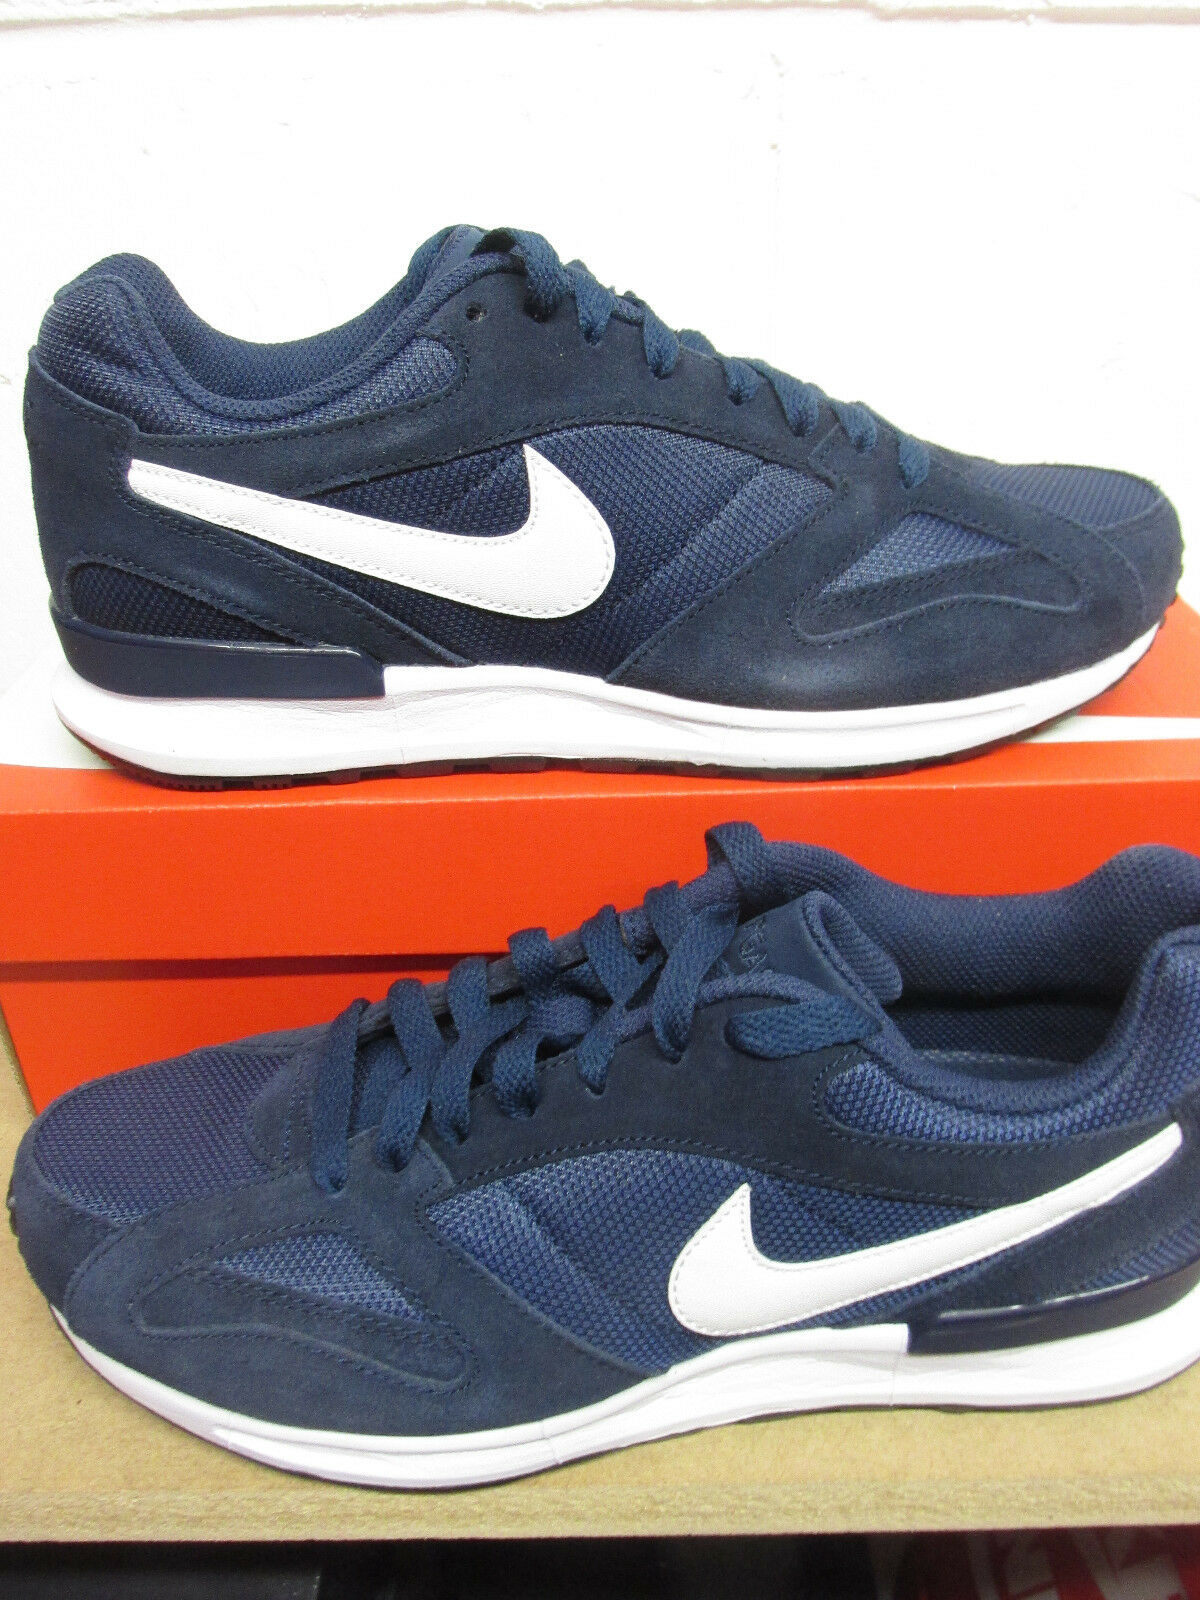 Nike Air Pegasus New Racer Baskets Homme 705172 411 Baskets Chaussures